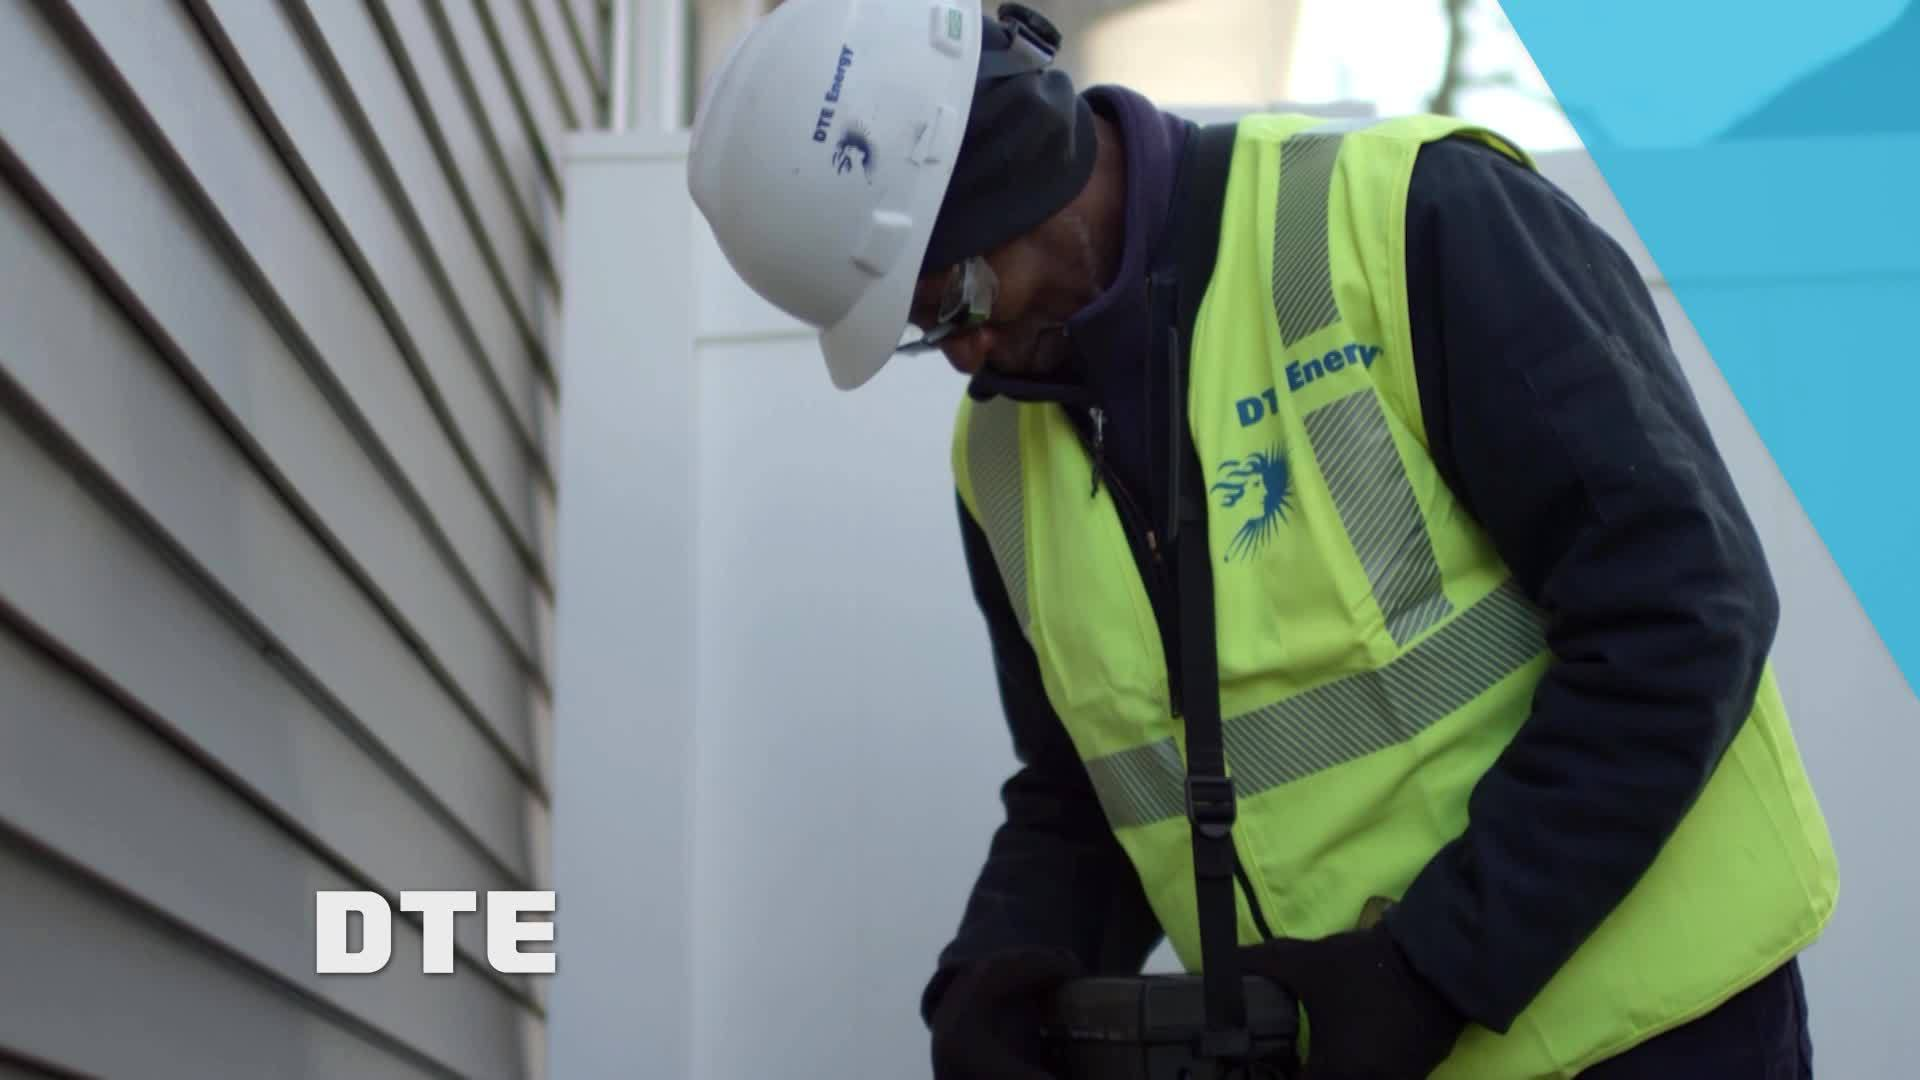 DTE_Energy_is_keeping_the_community_safe_3_20190522153122